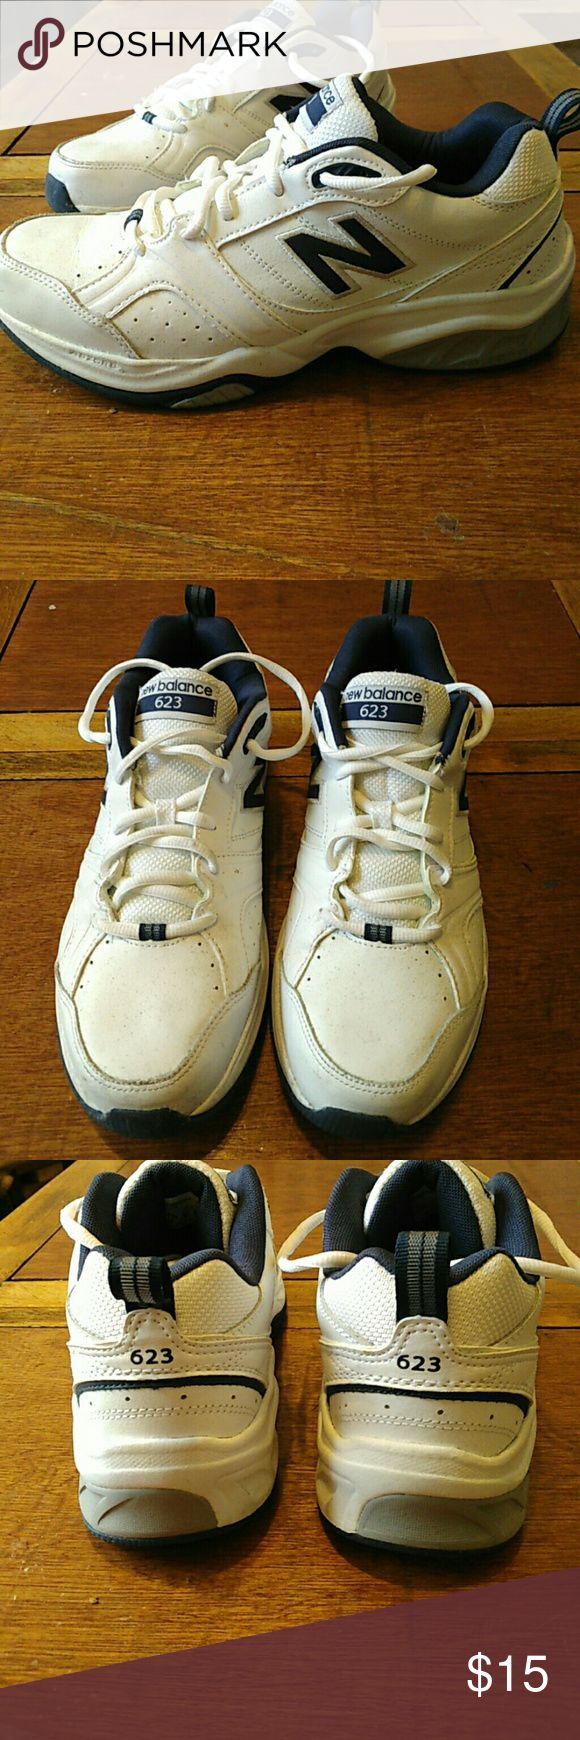 """New Balance 623 White tennis shoes with navy blue """"N"""" on the sides and some grey detail on side of sole. Very good shoes and comfortable too! These have been worn once for a few hours, good condition. New Balance Shoes Sneakers"""